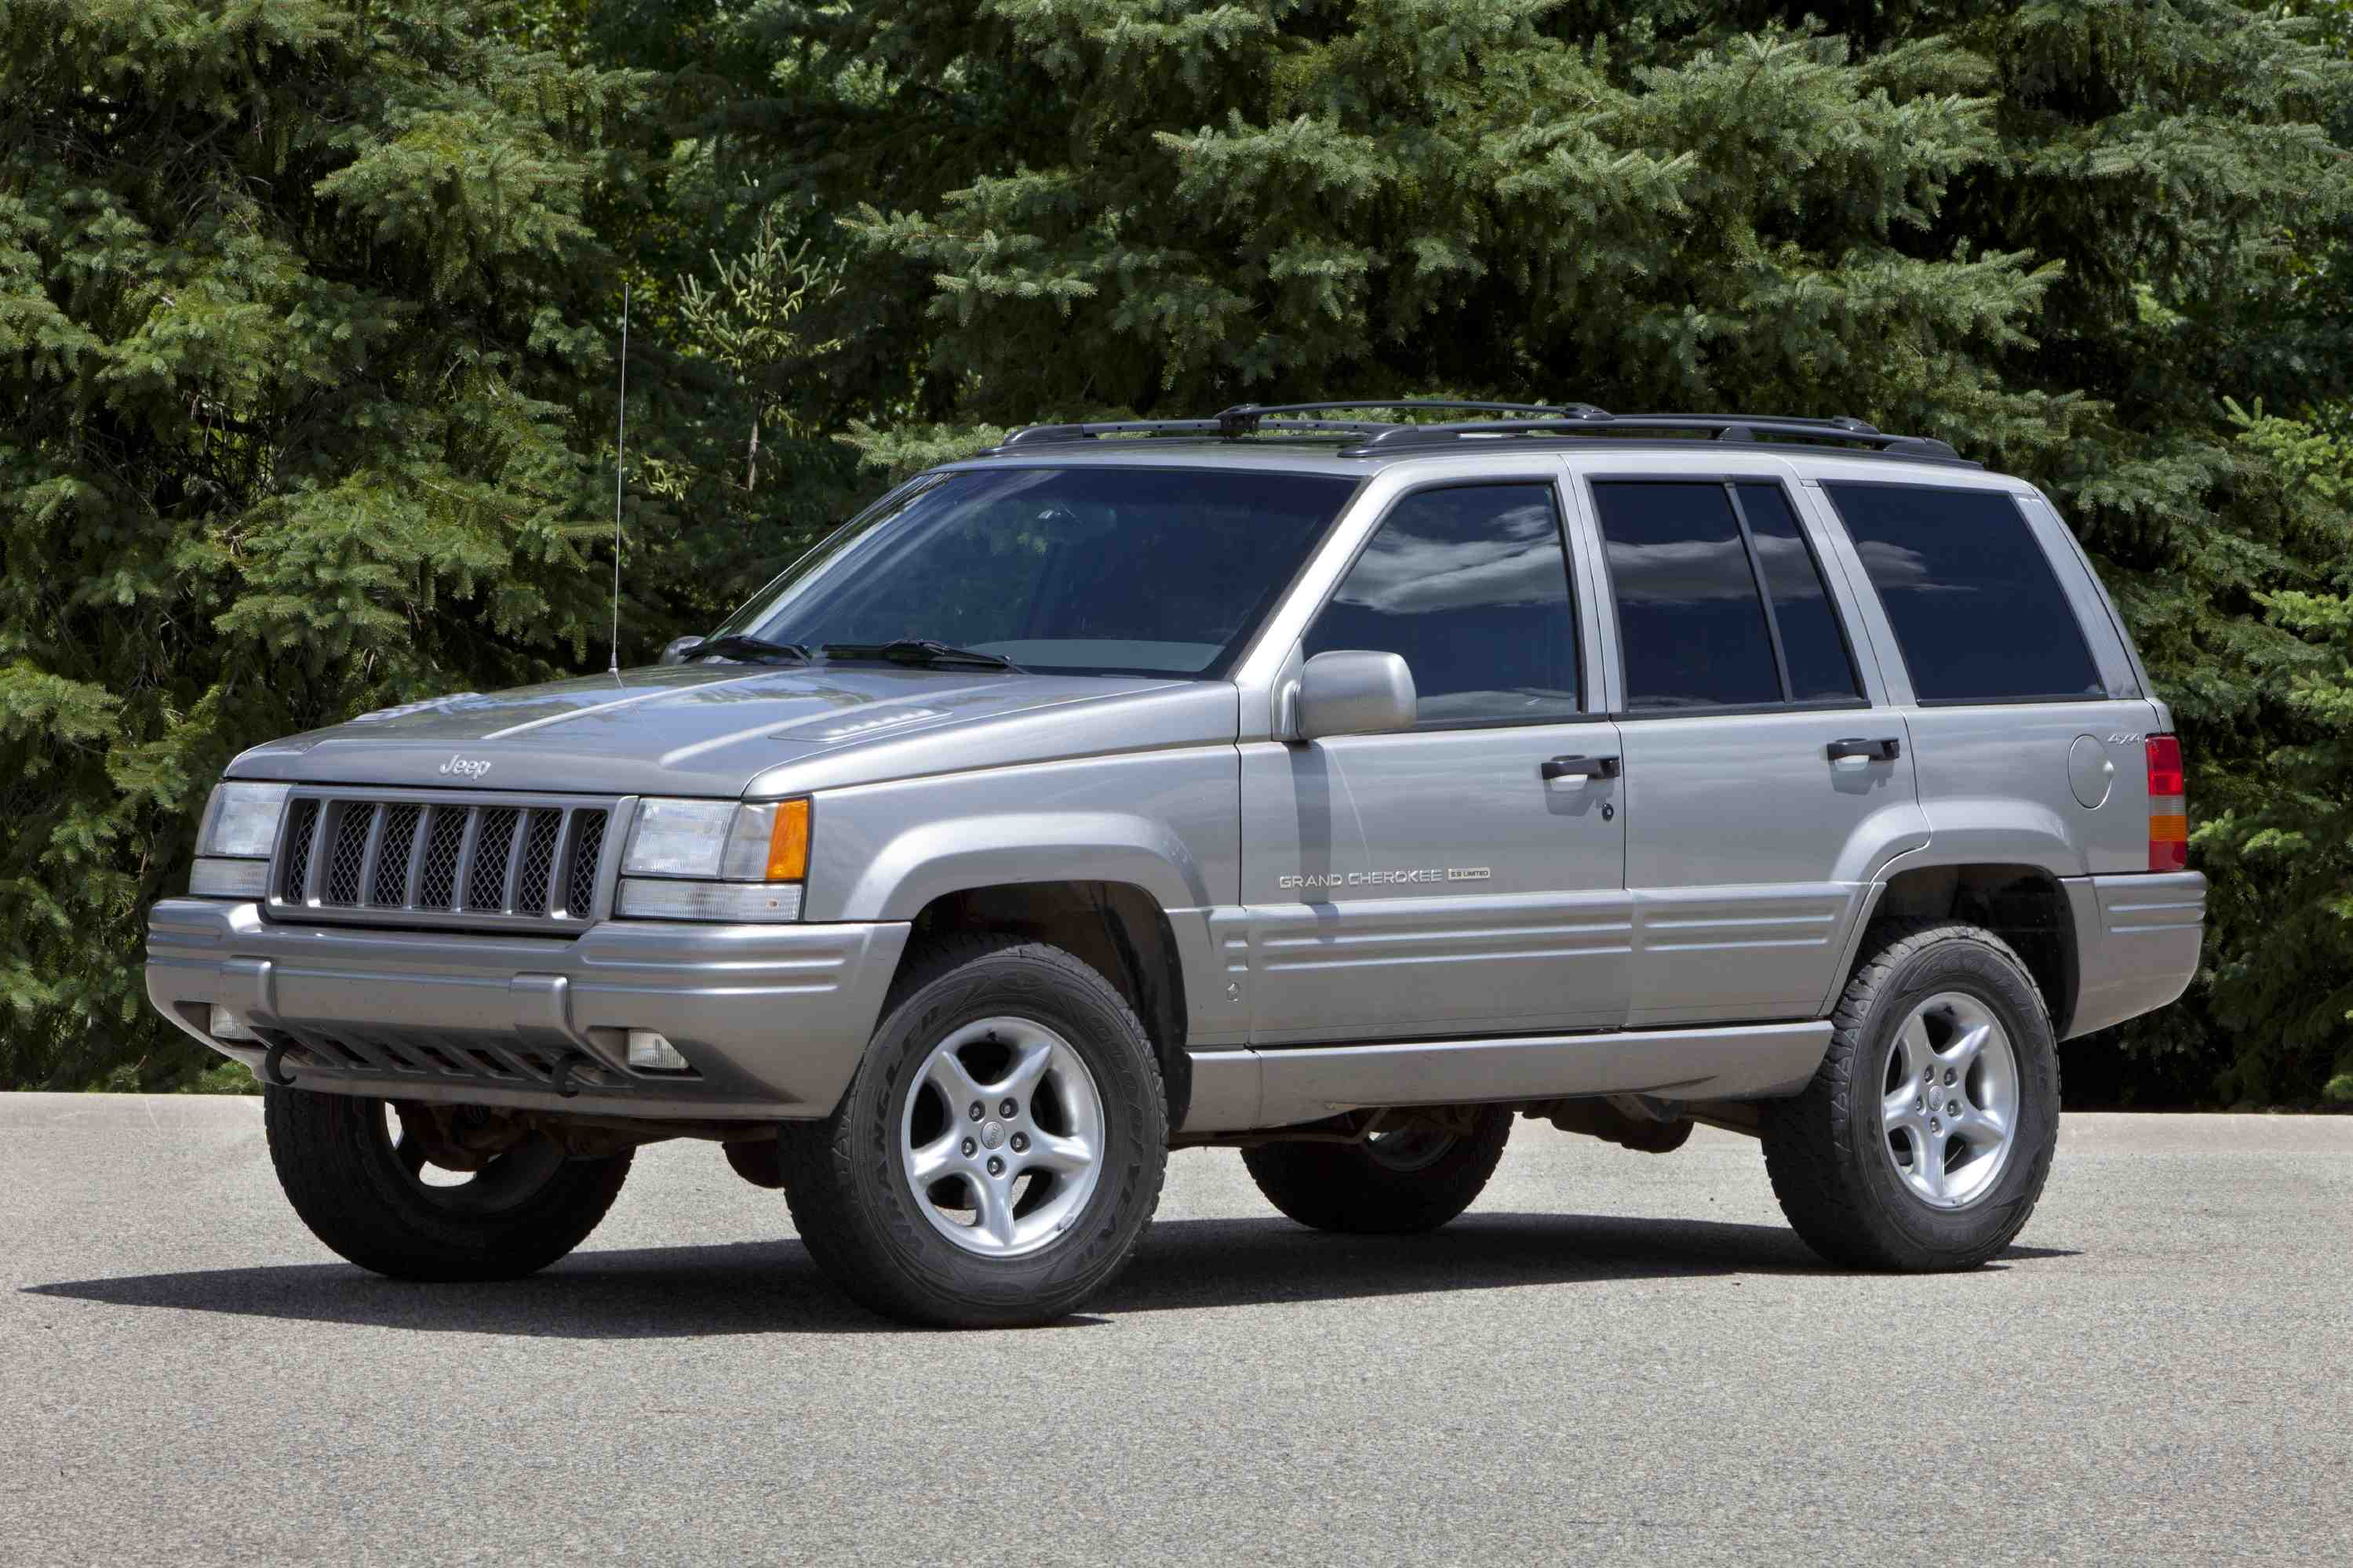 1998 jeep grand cherokee first generation grand cherokee 1992 1998 on the zj platform